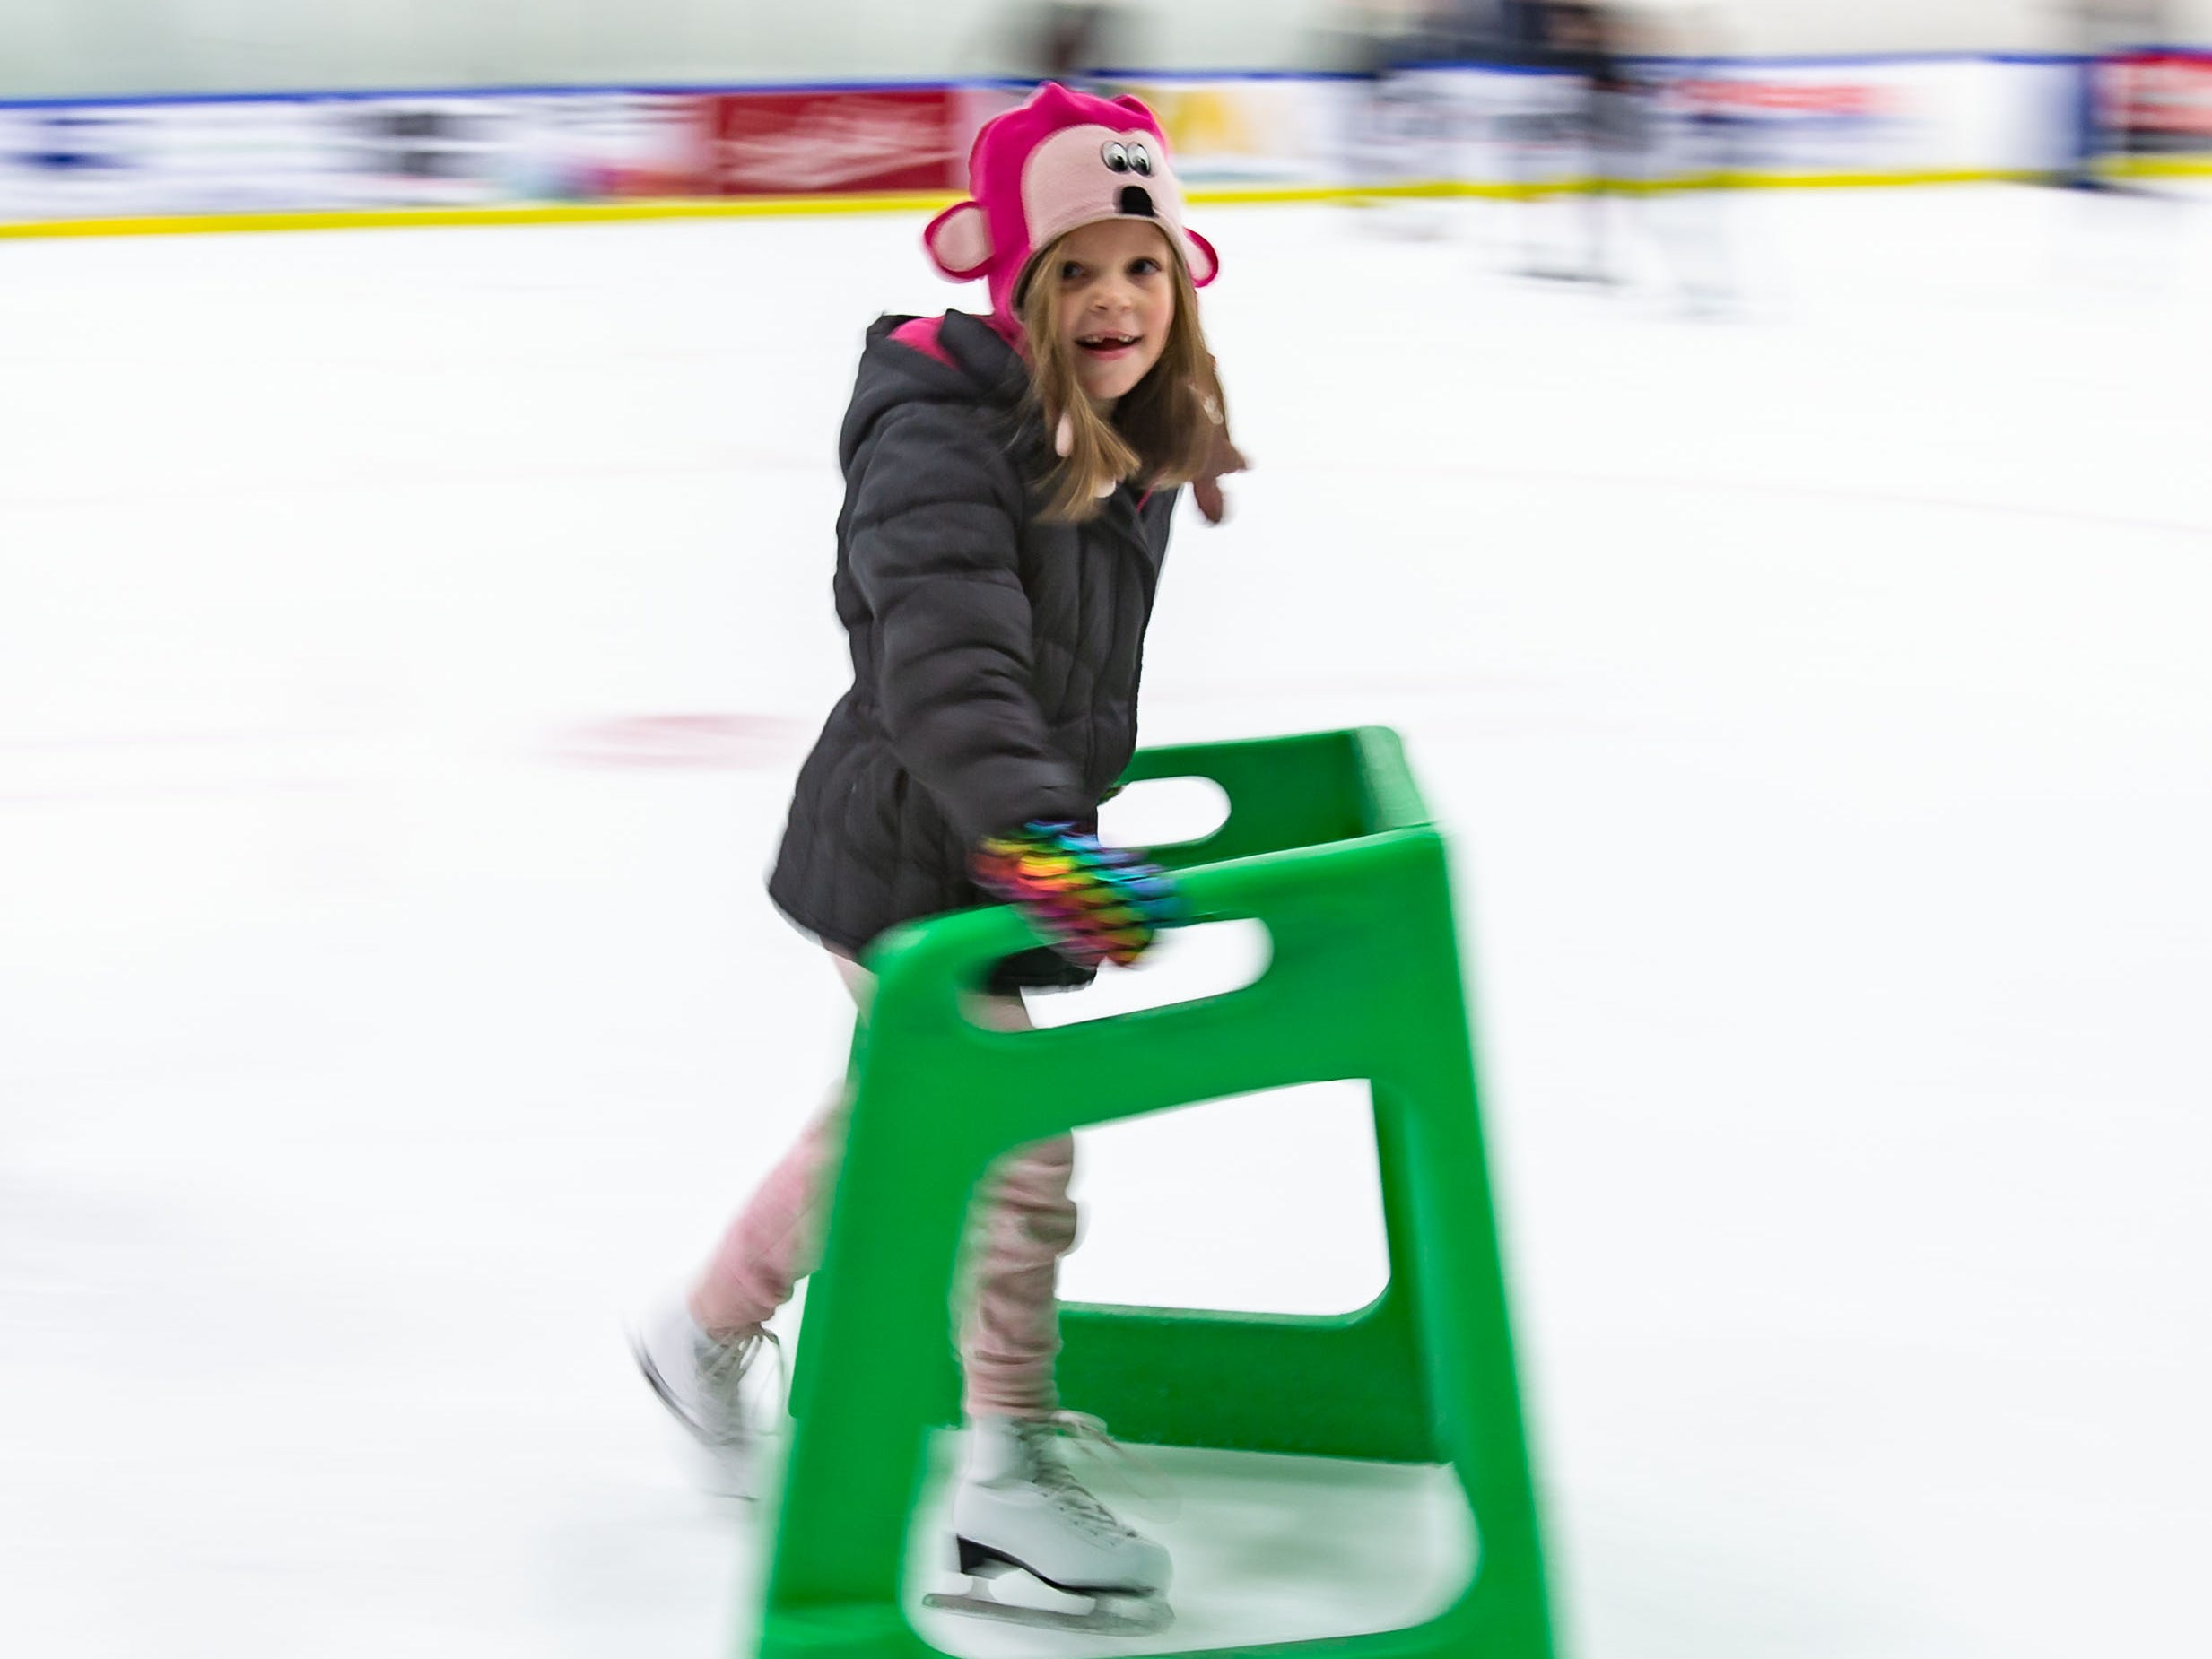 Six-year-old Darcie Olson of Mequon zooms past during public skating hours at the Ozaukee Ice Center in Mequon on Saturday, Dec. 22, 2018. The center offers public skating between 12:15 p.m. and 2:15 p.m. on Saturdays and Sundays.